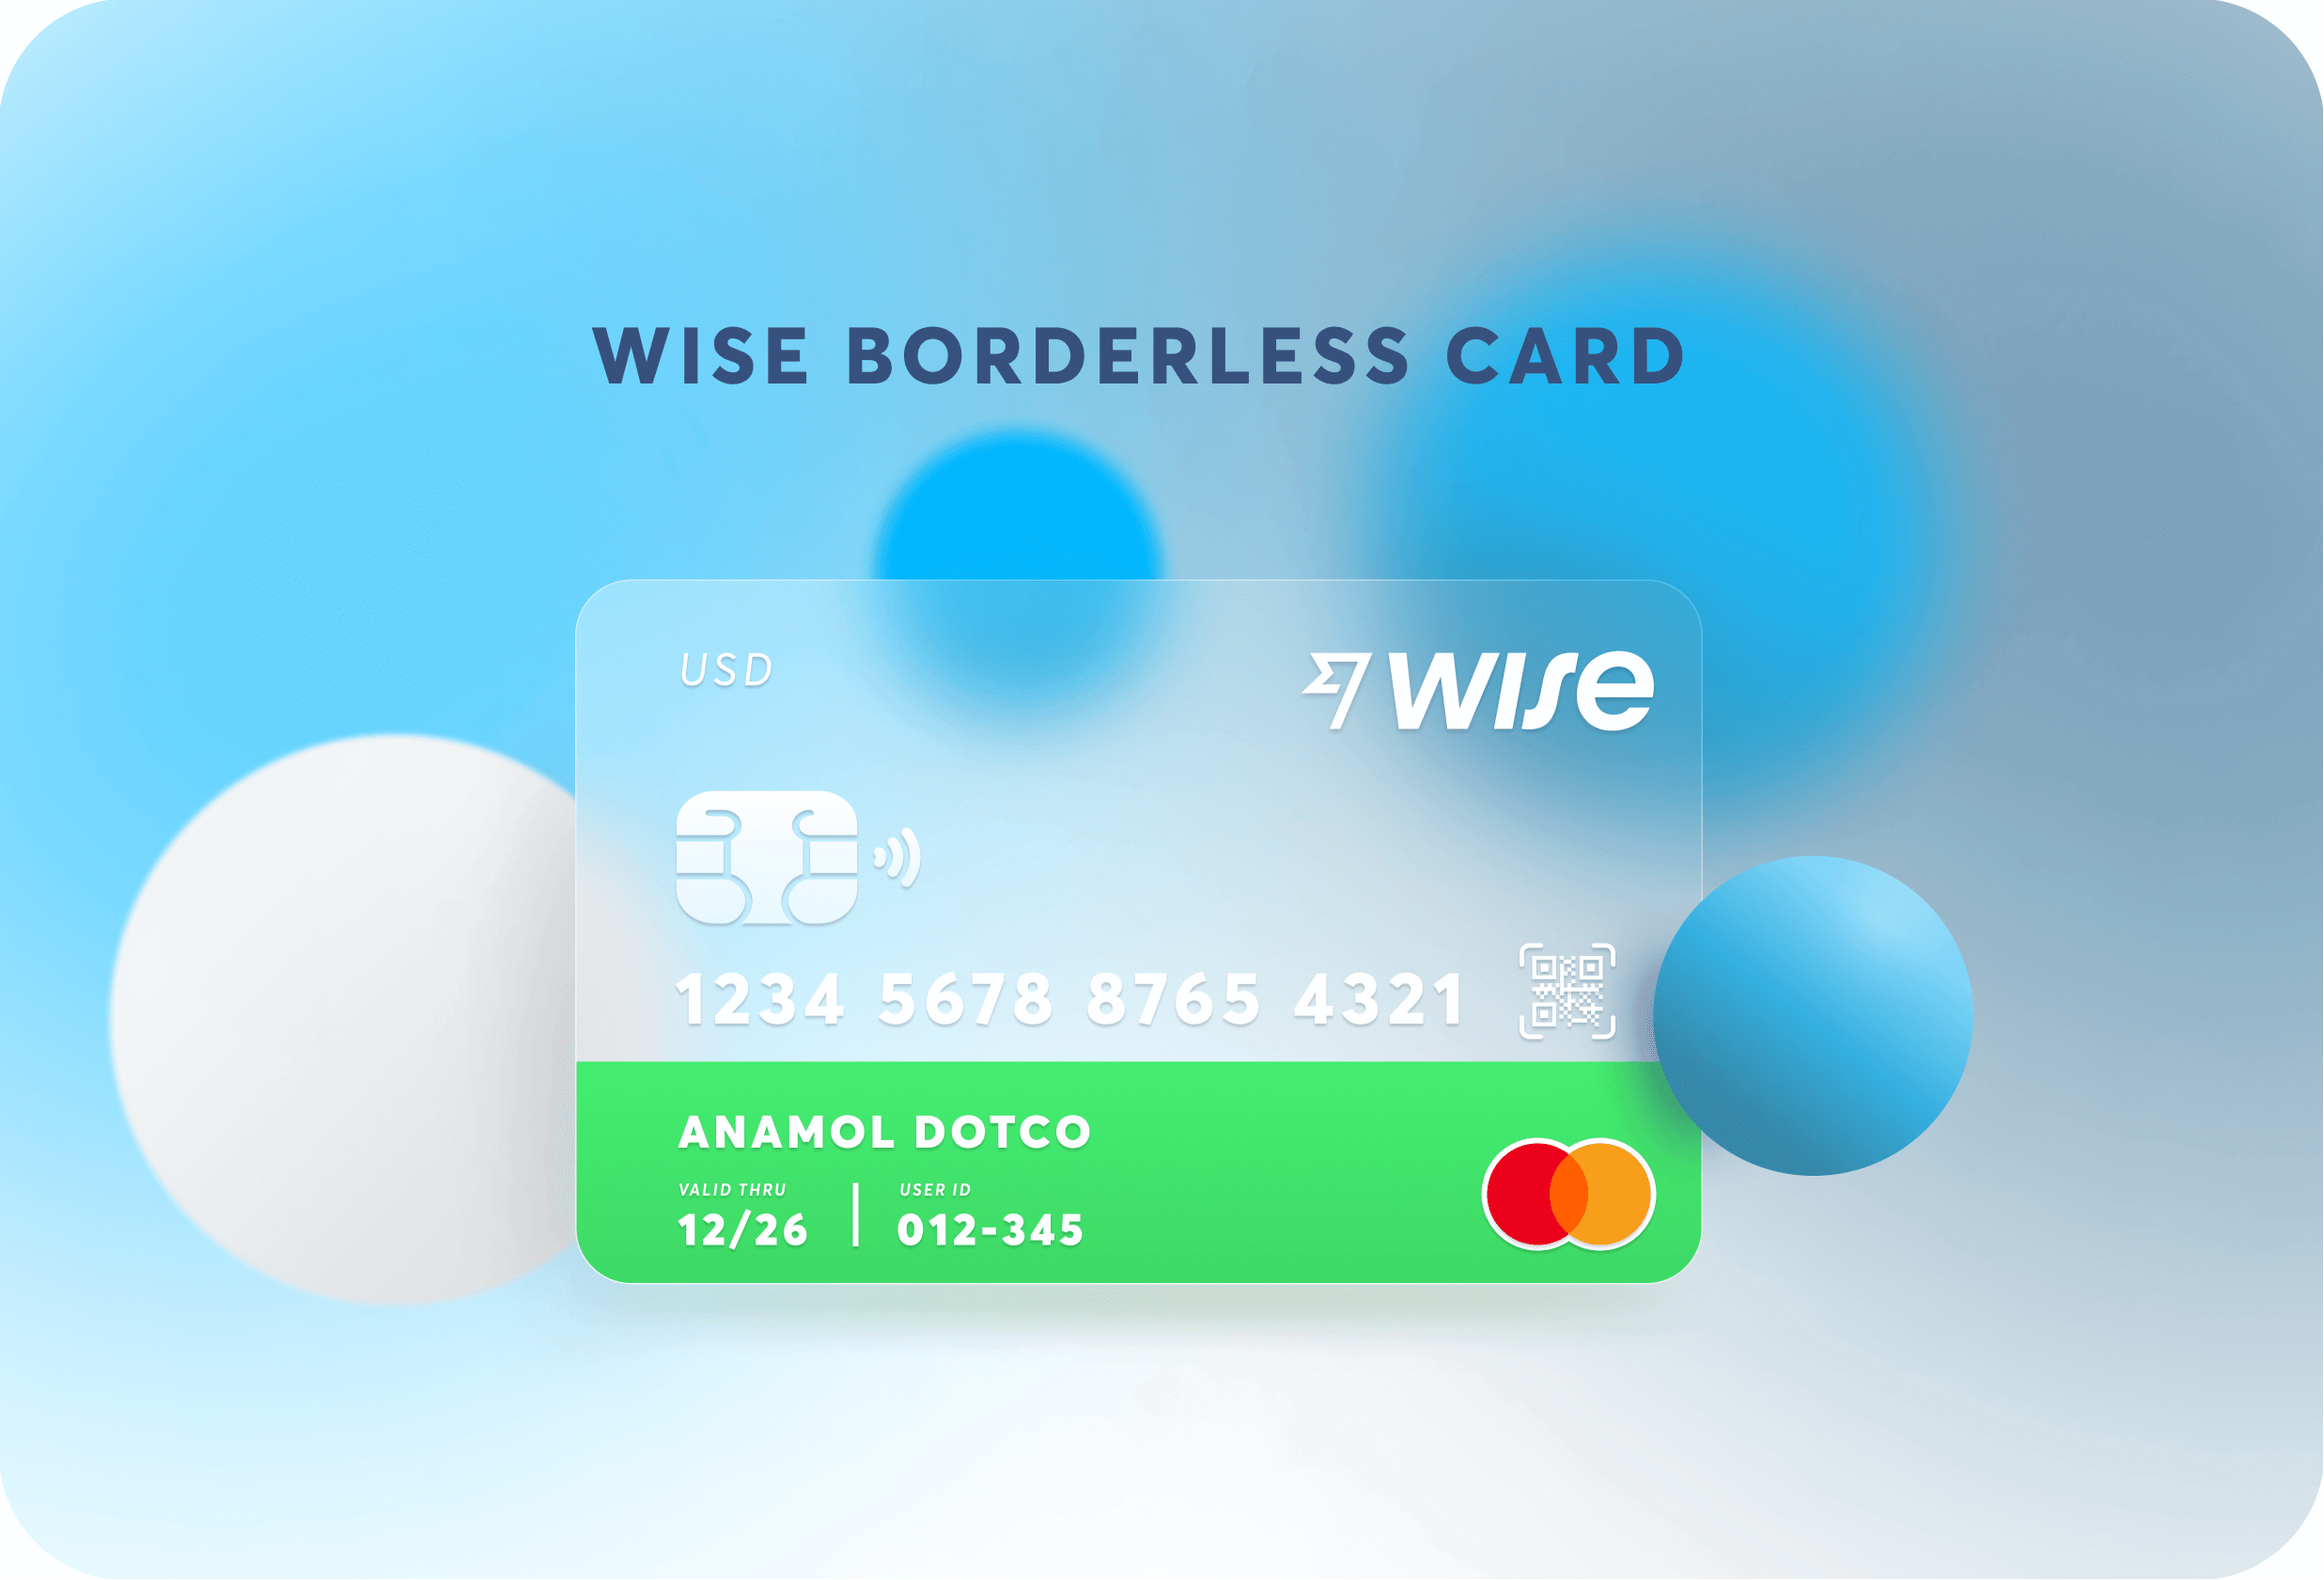 wise borderless card concept